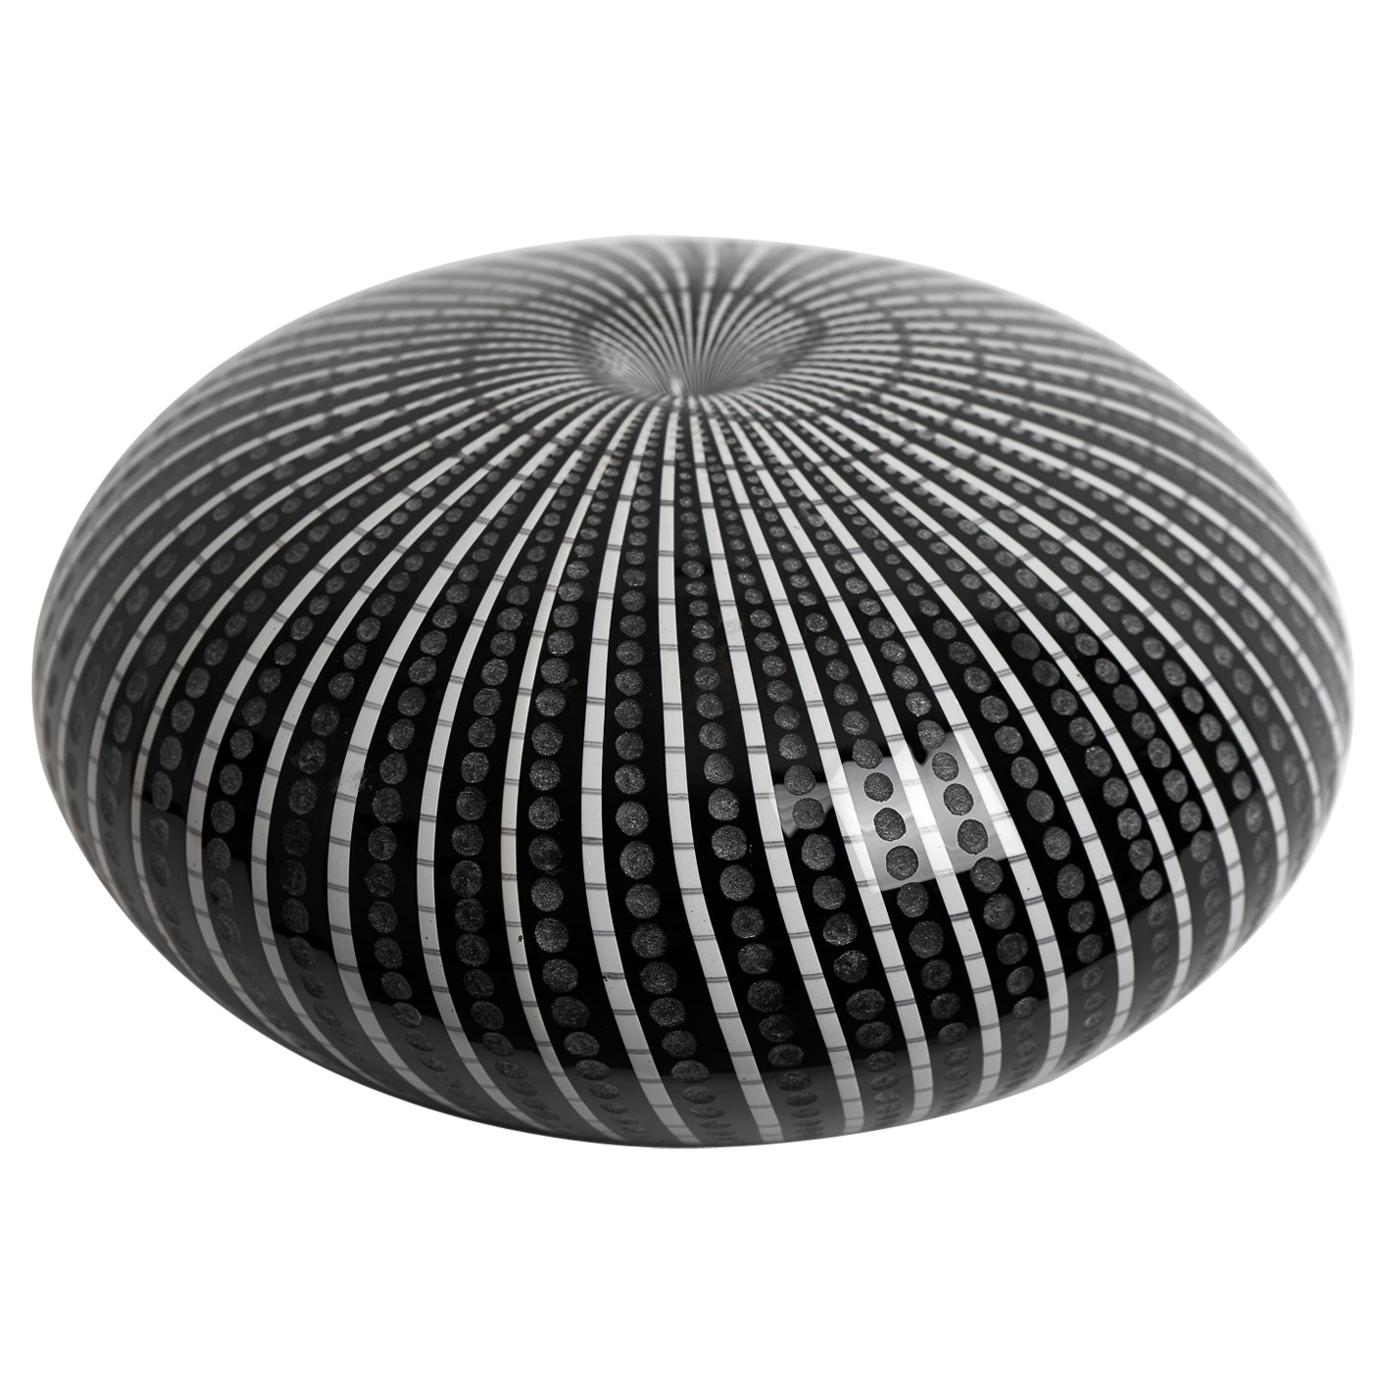 One of a Kind Blown and Watermarked Black and White Glass Vase